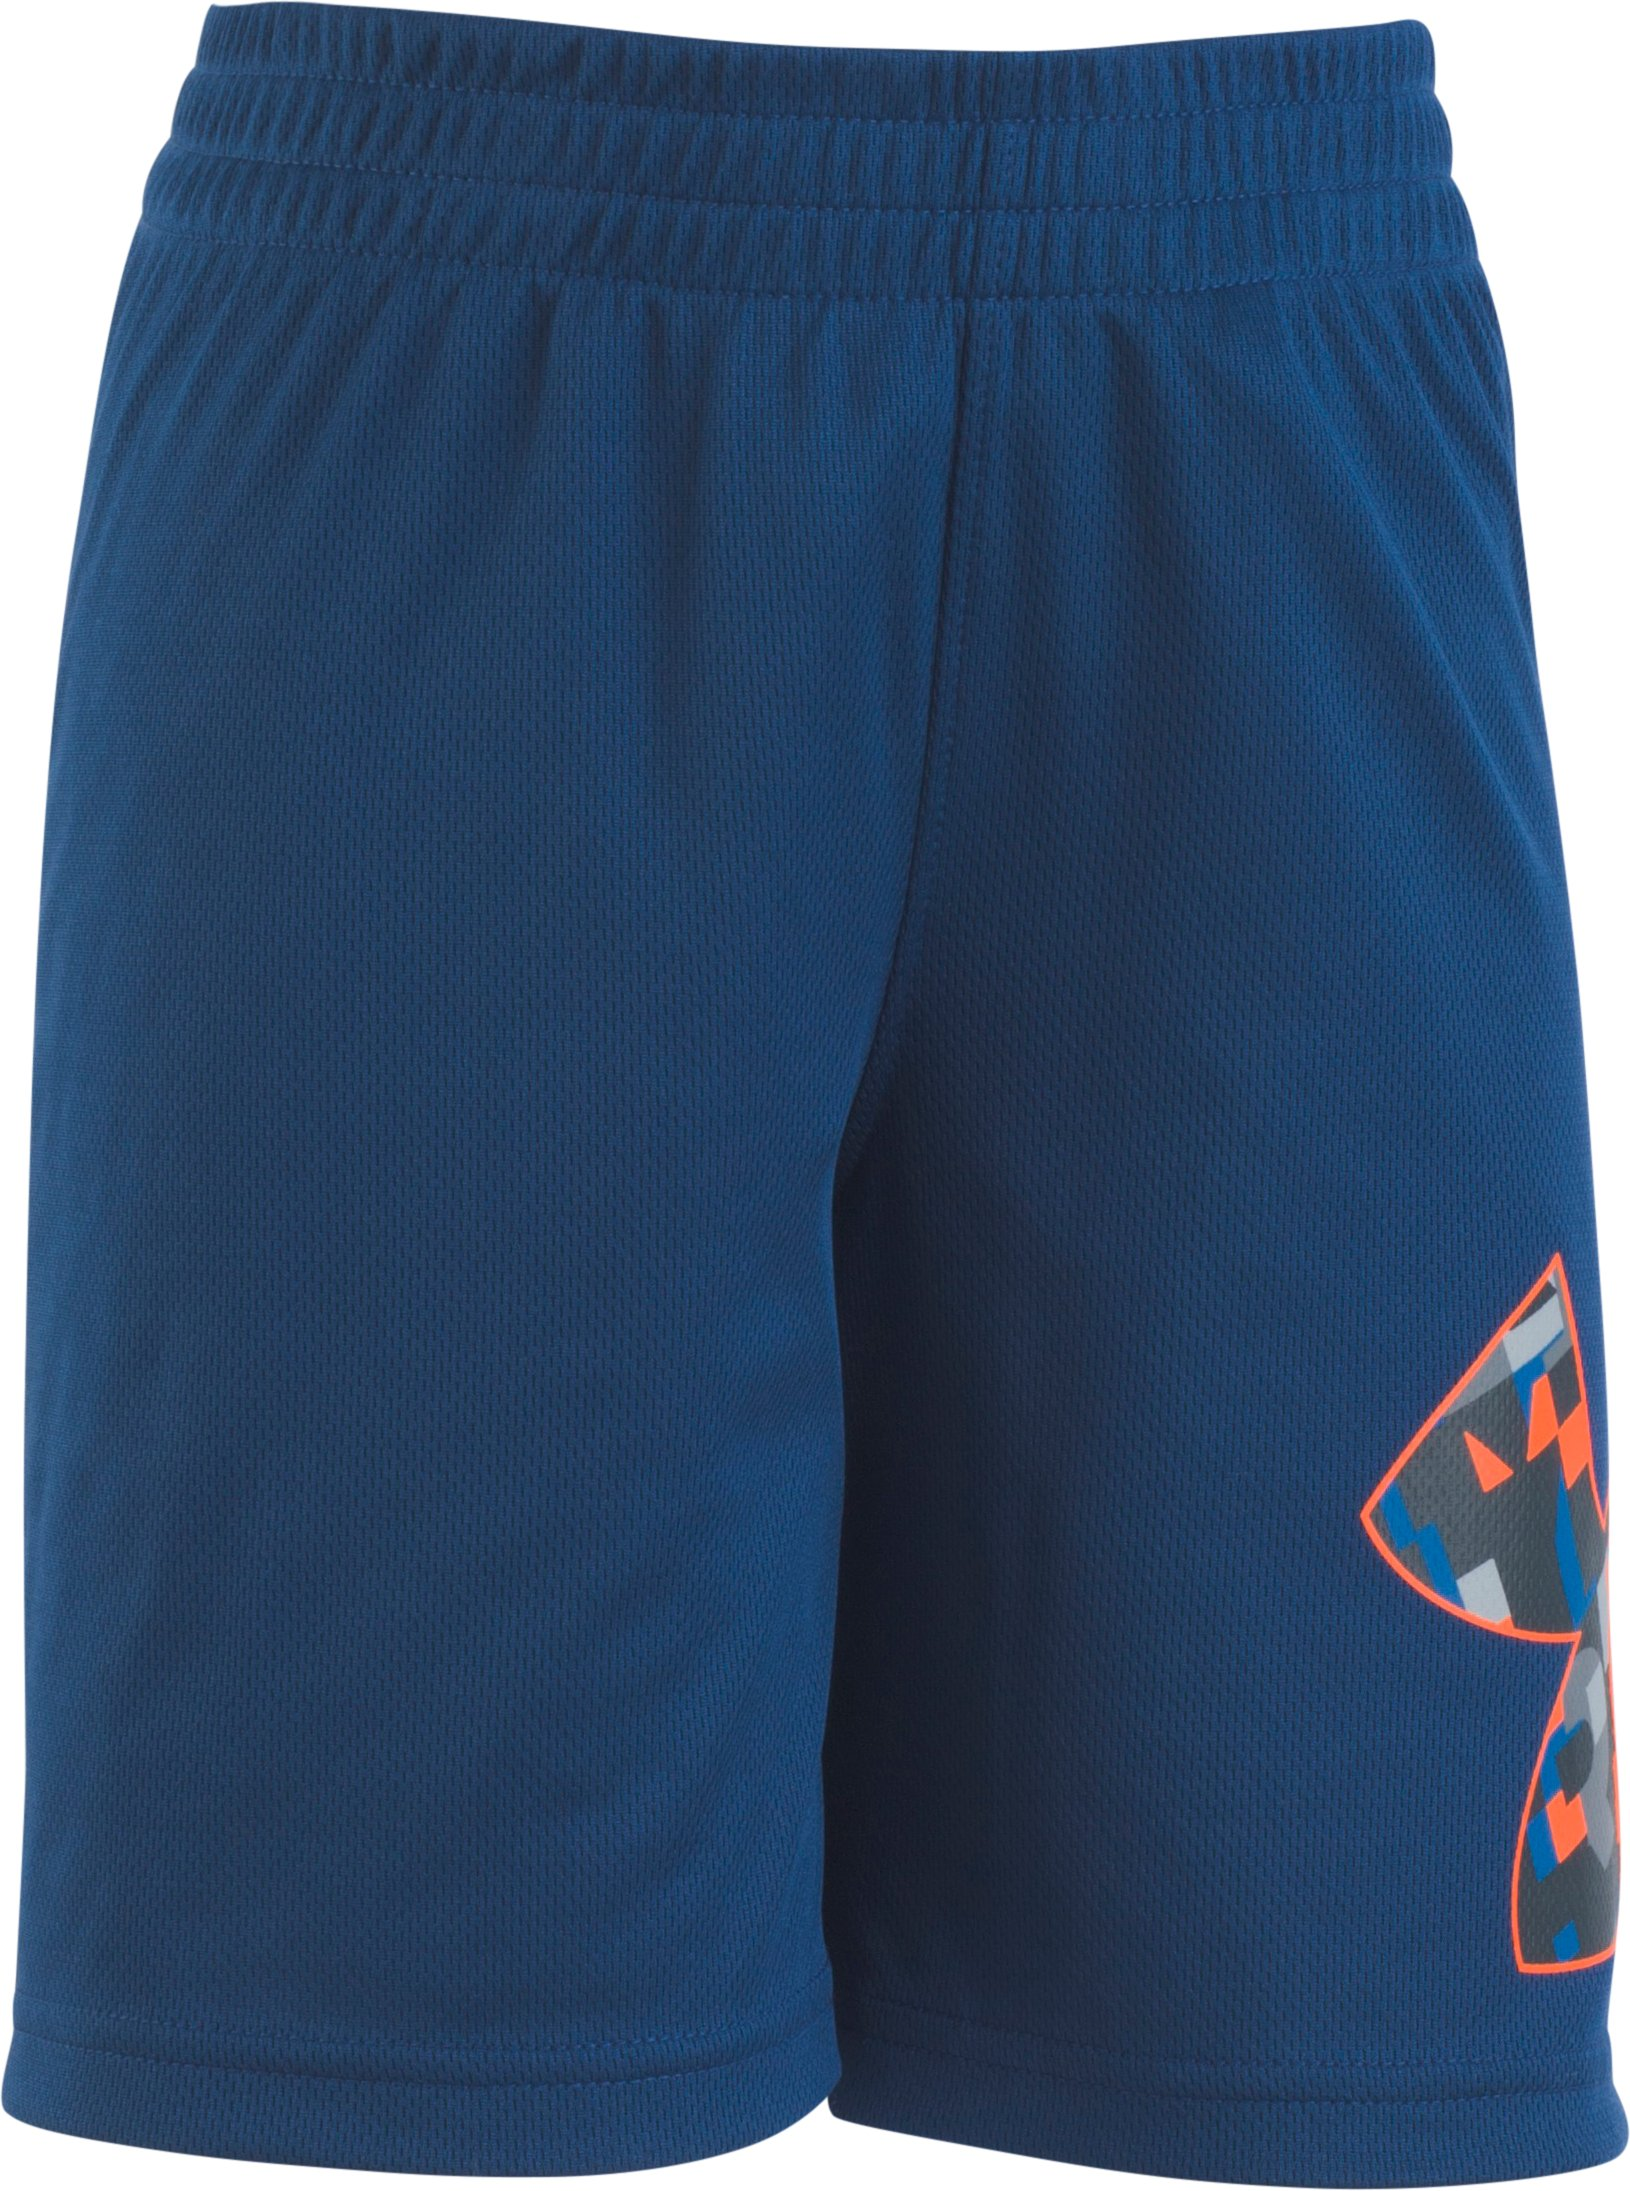 Boys' Pre-School UA Wordmark Striker Shorts, Moroccan Blue, Laydown